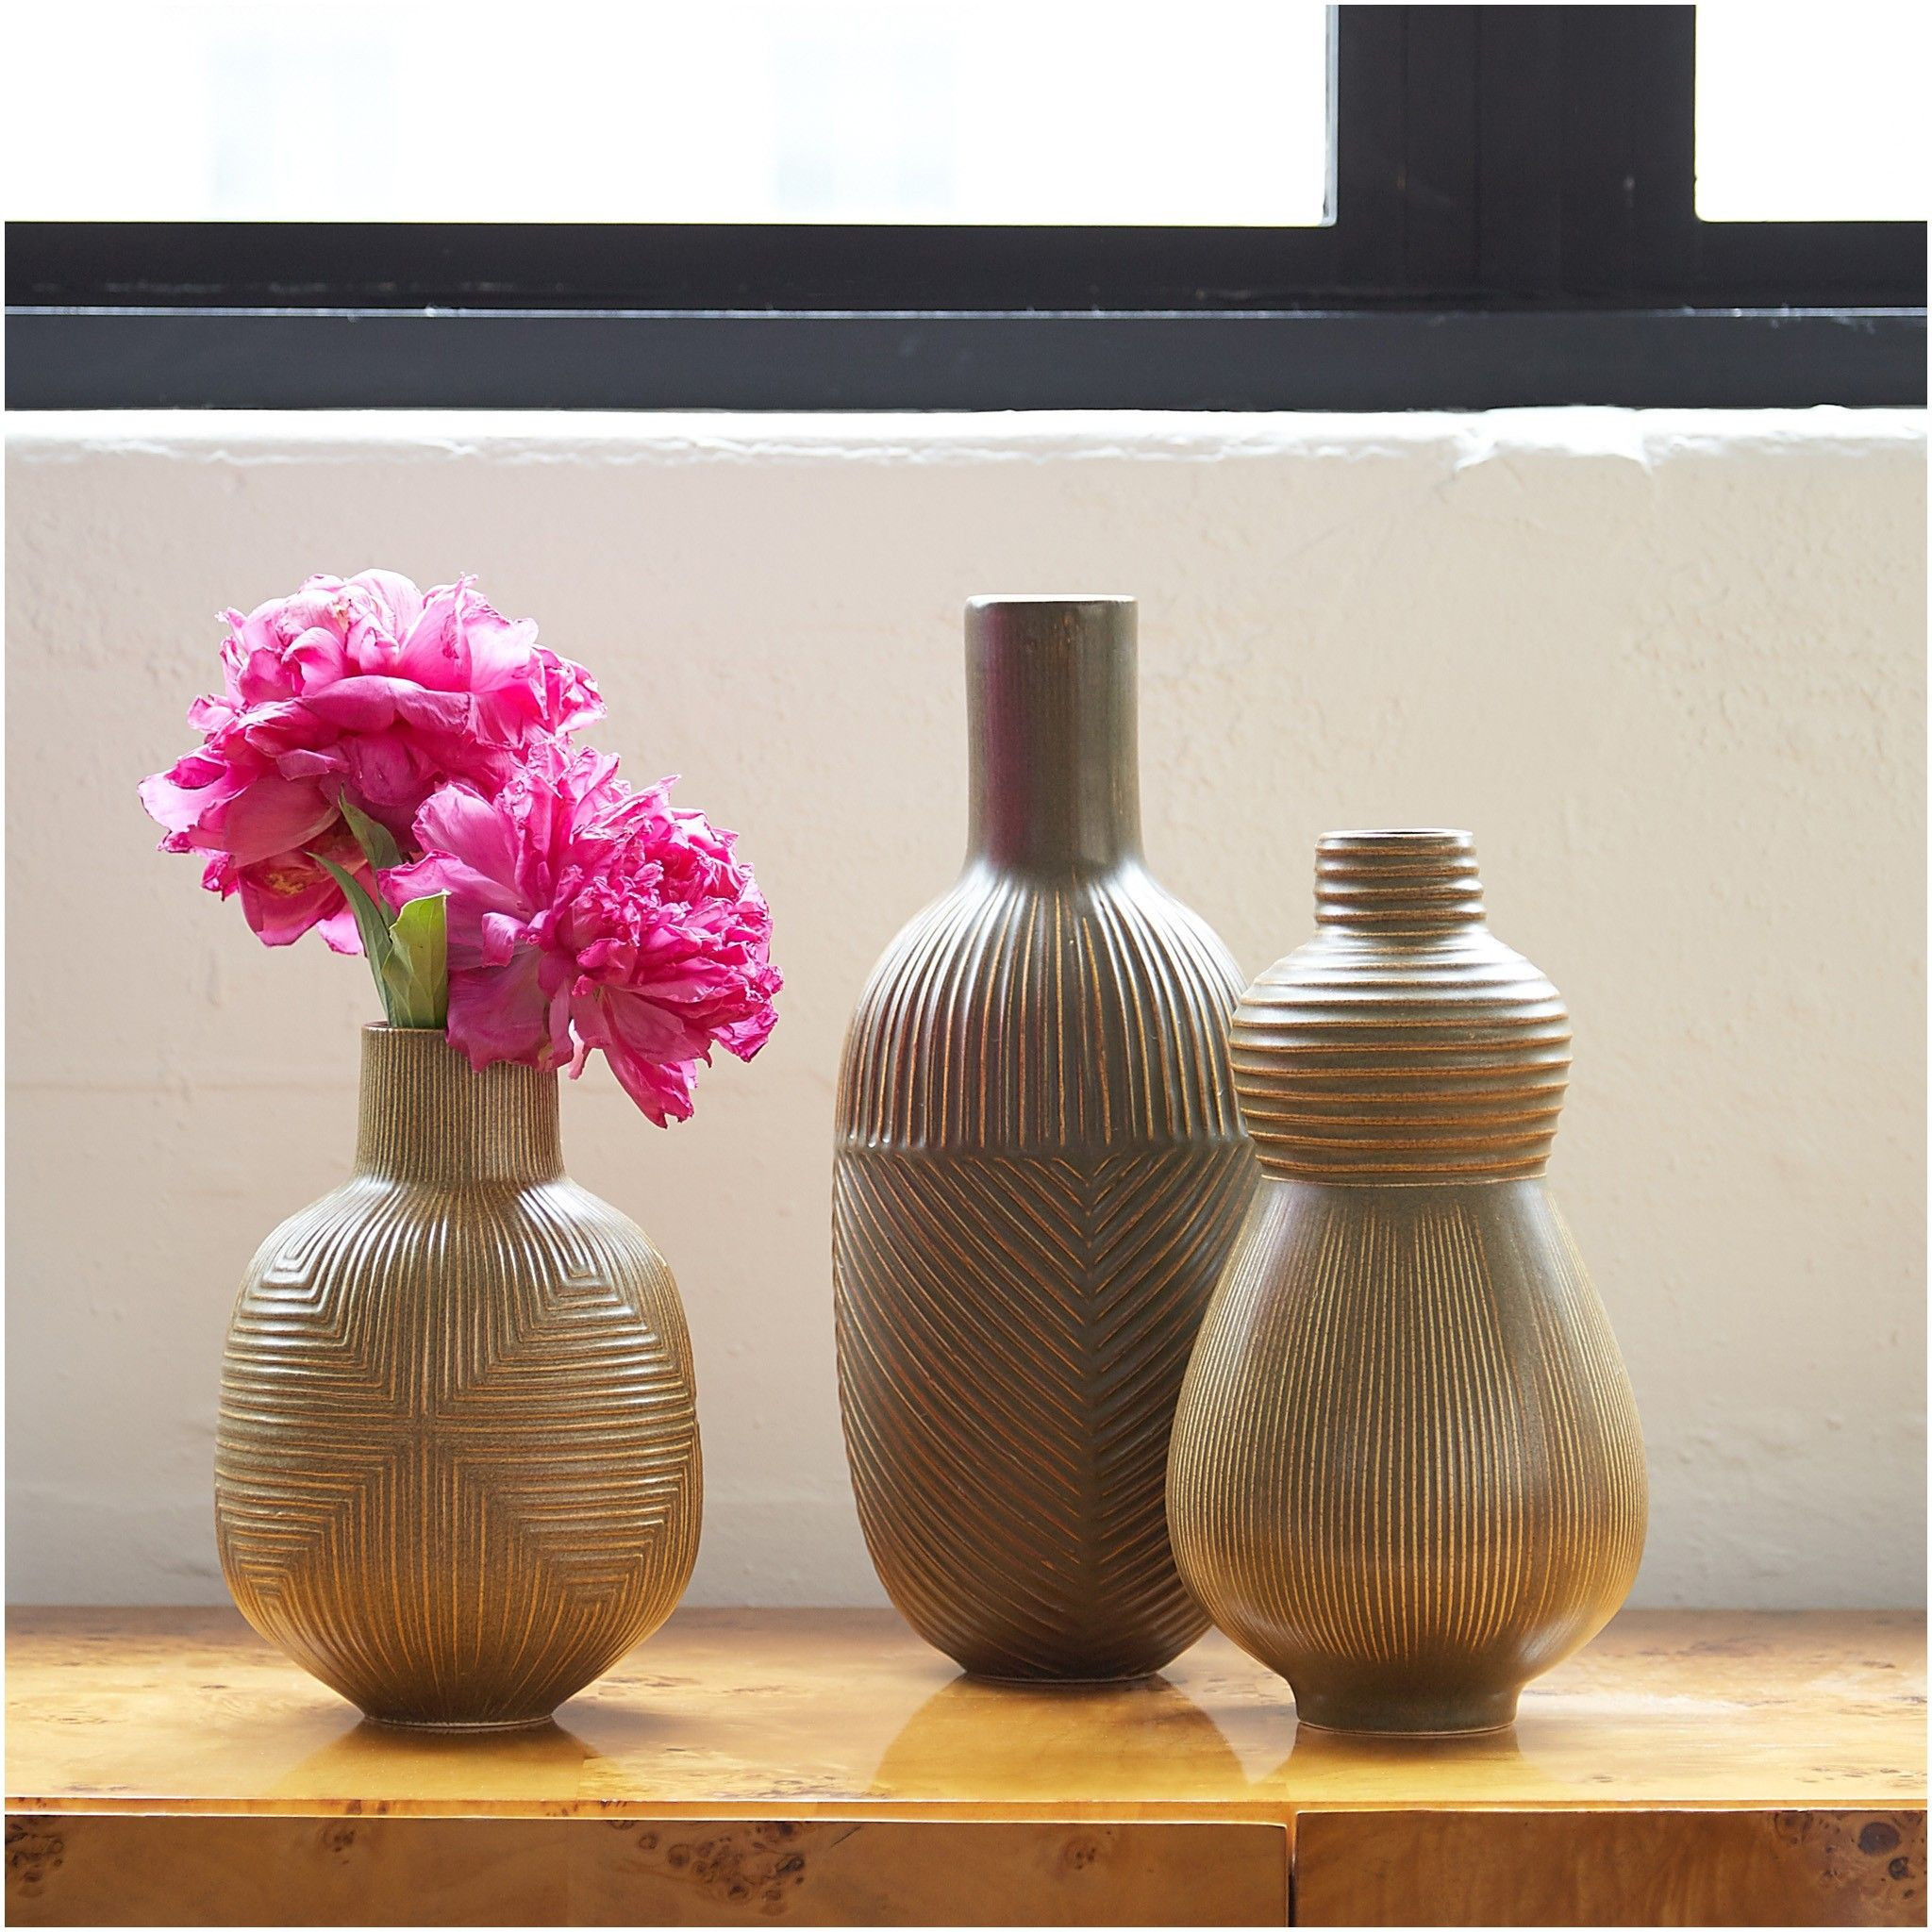 buy floor vases online of 44 tall vase with sticks the weekly world in 44 tall vase with sticks